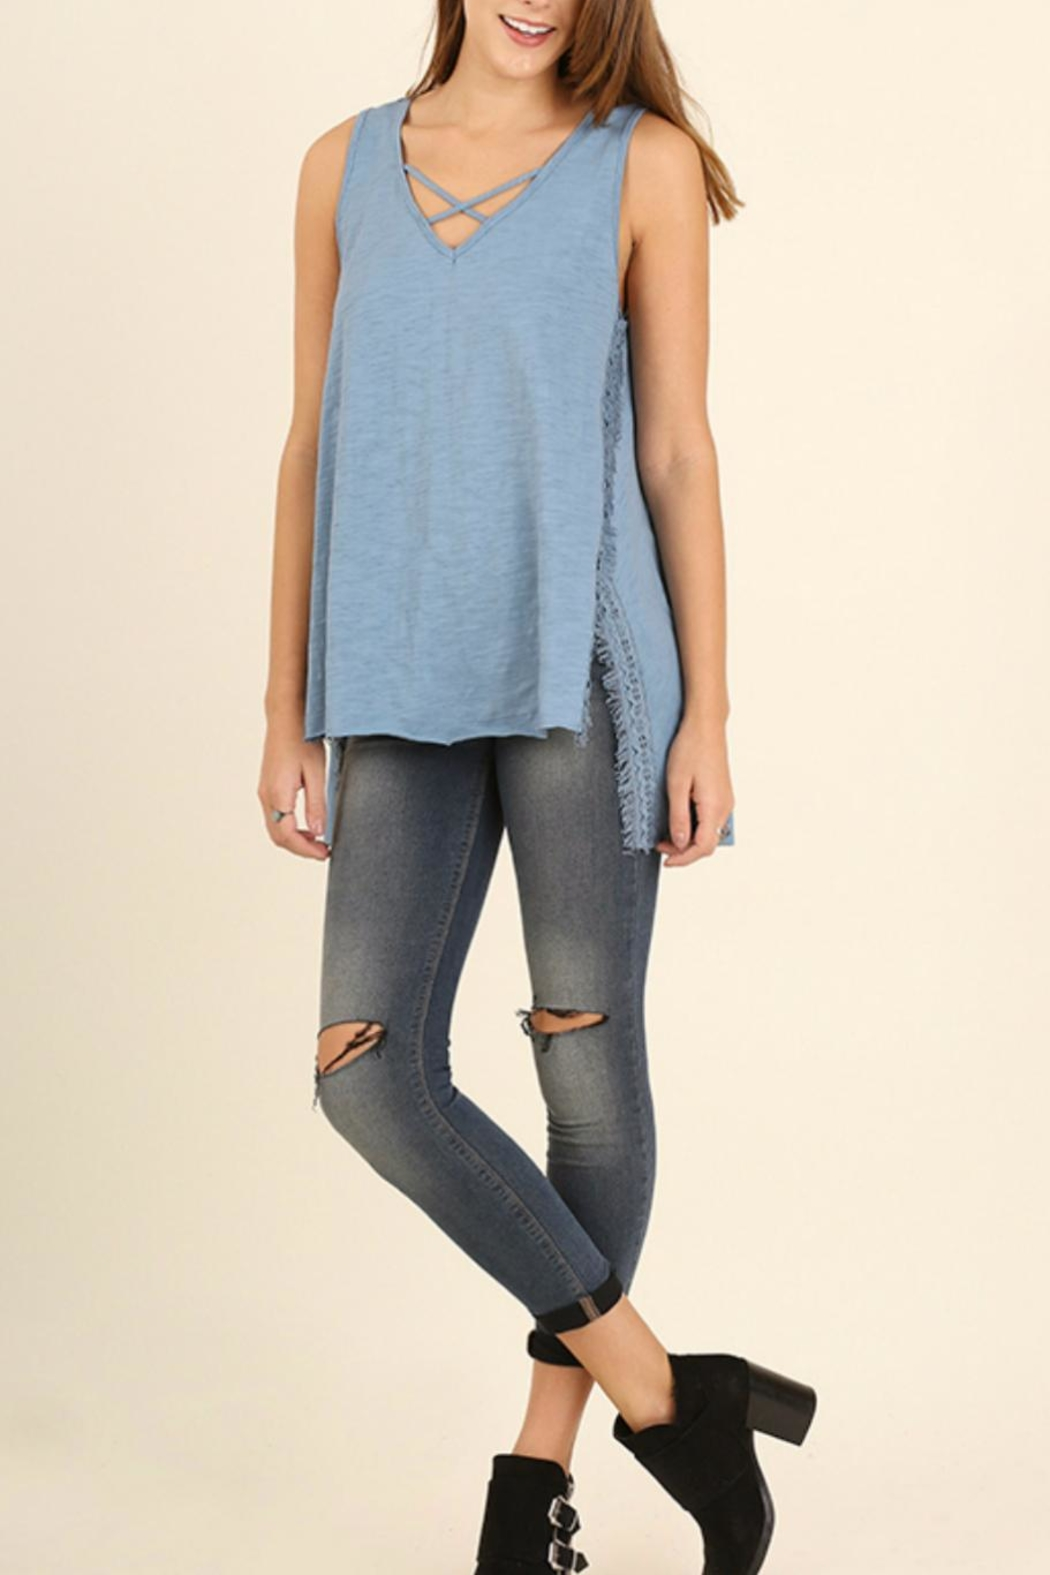 Umgee USA High Low Sleeveless Top - Front Full Image